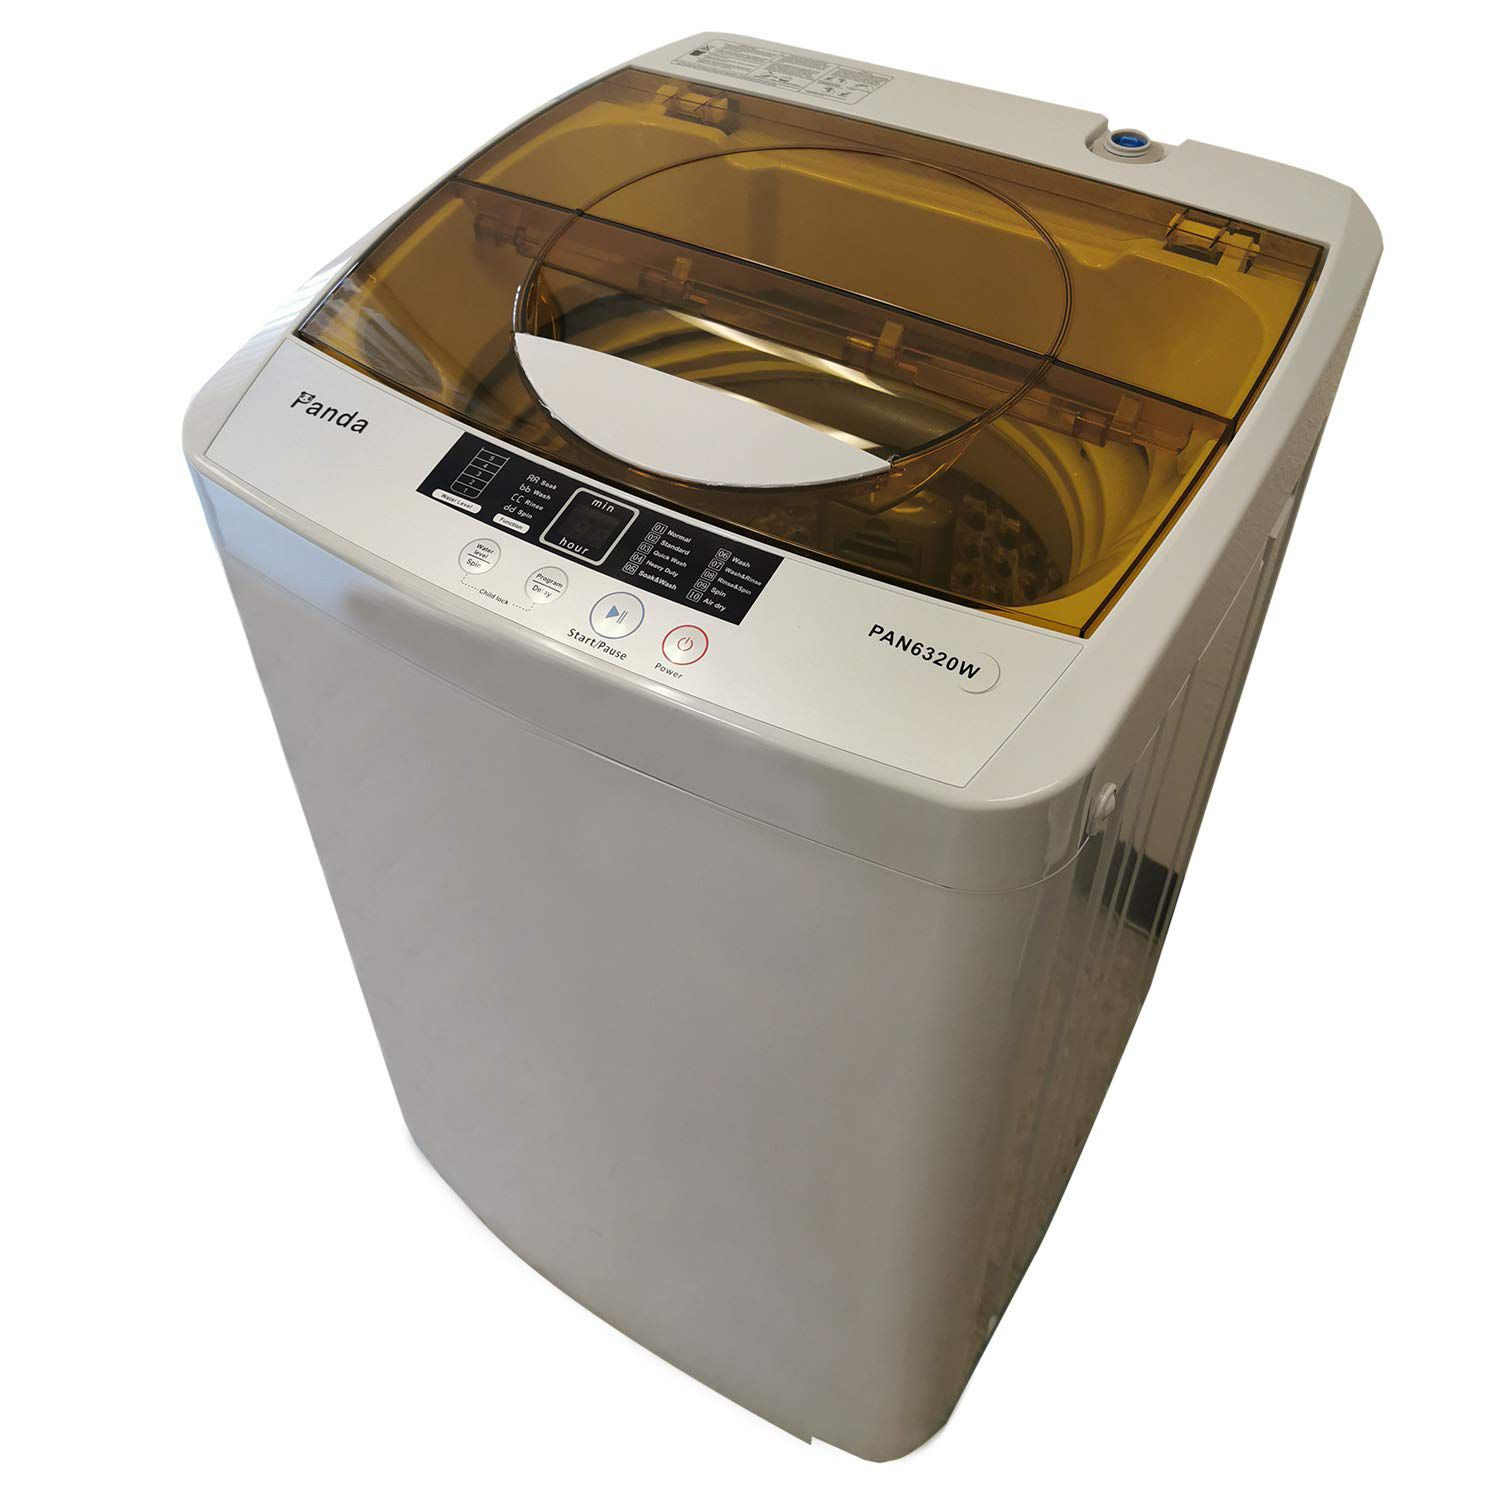 The Panda PAN6320W Portable Washing Machine can easily be transported from one spot to another.